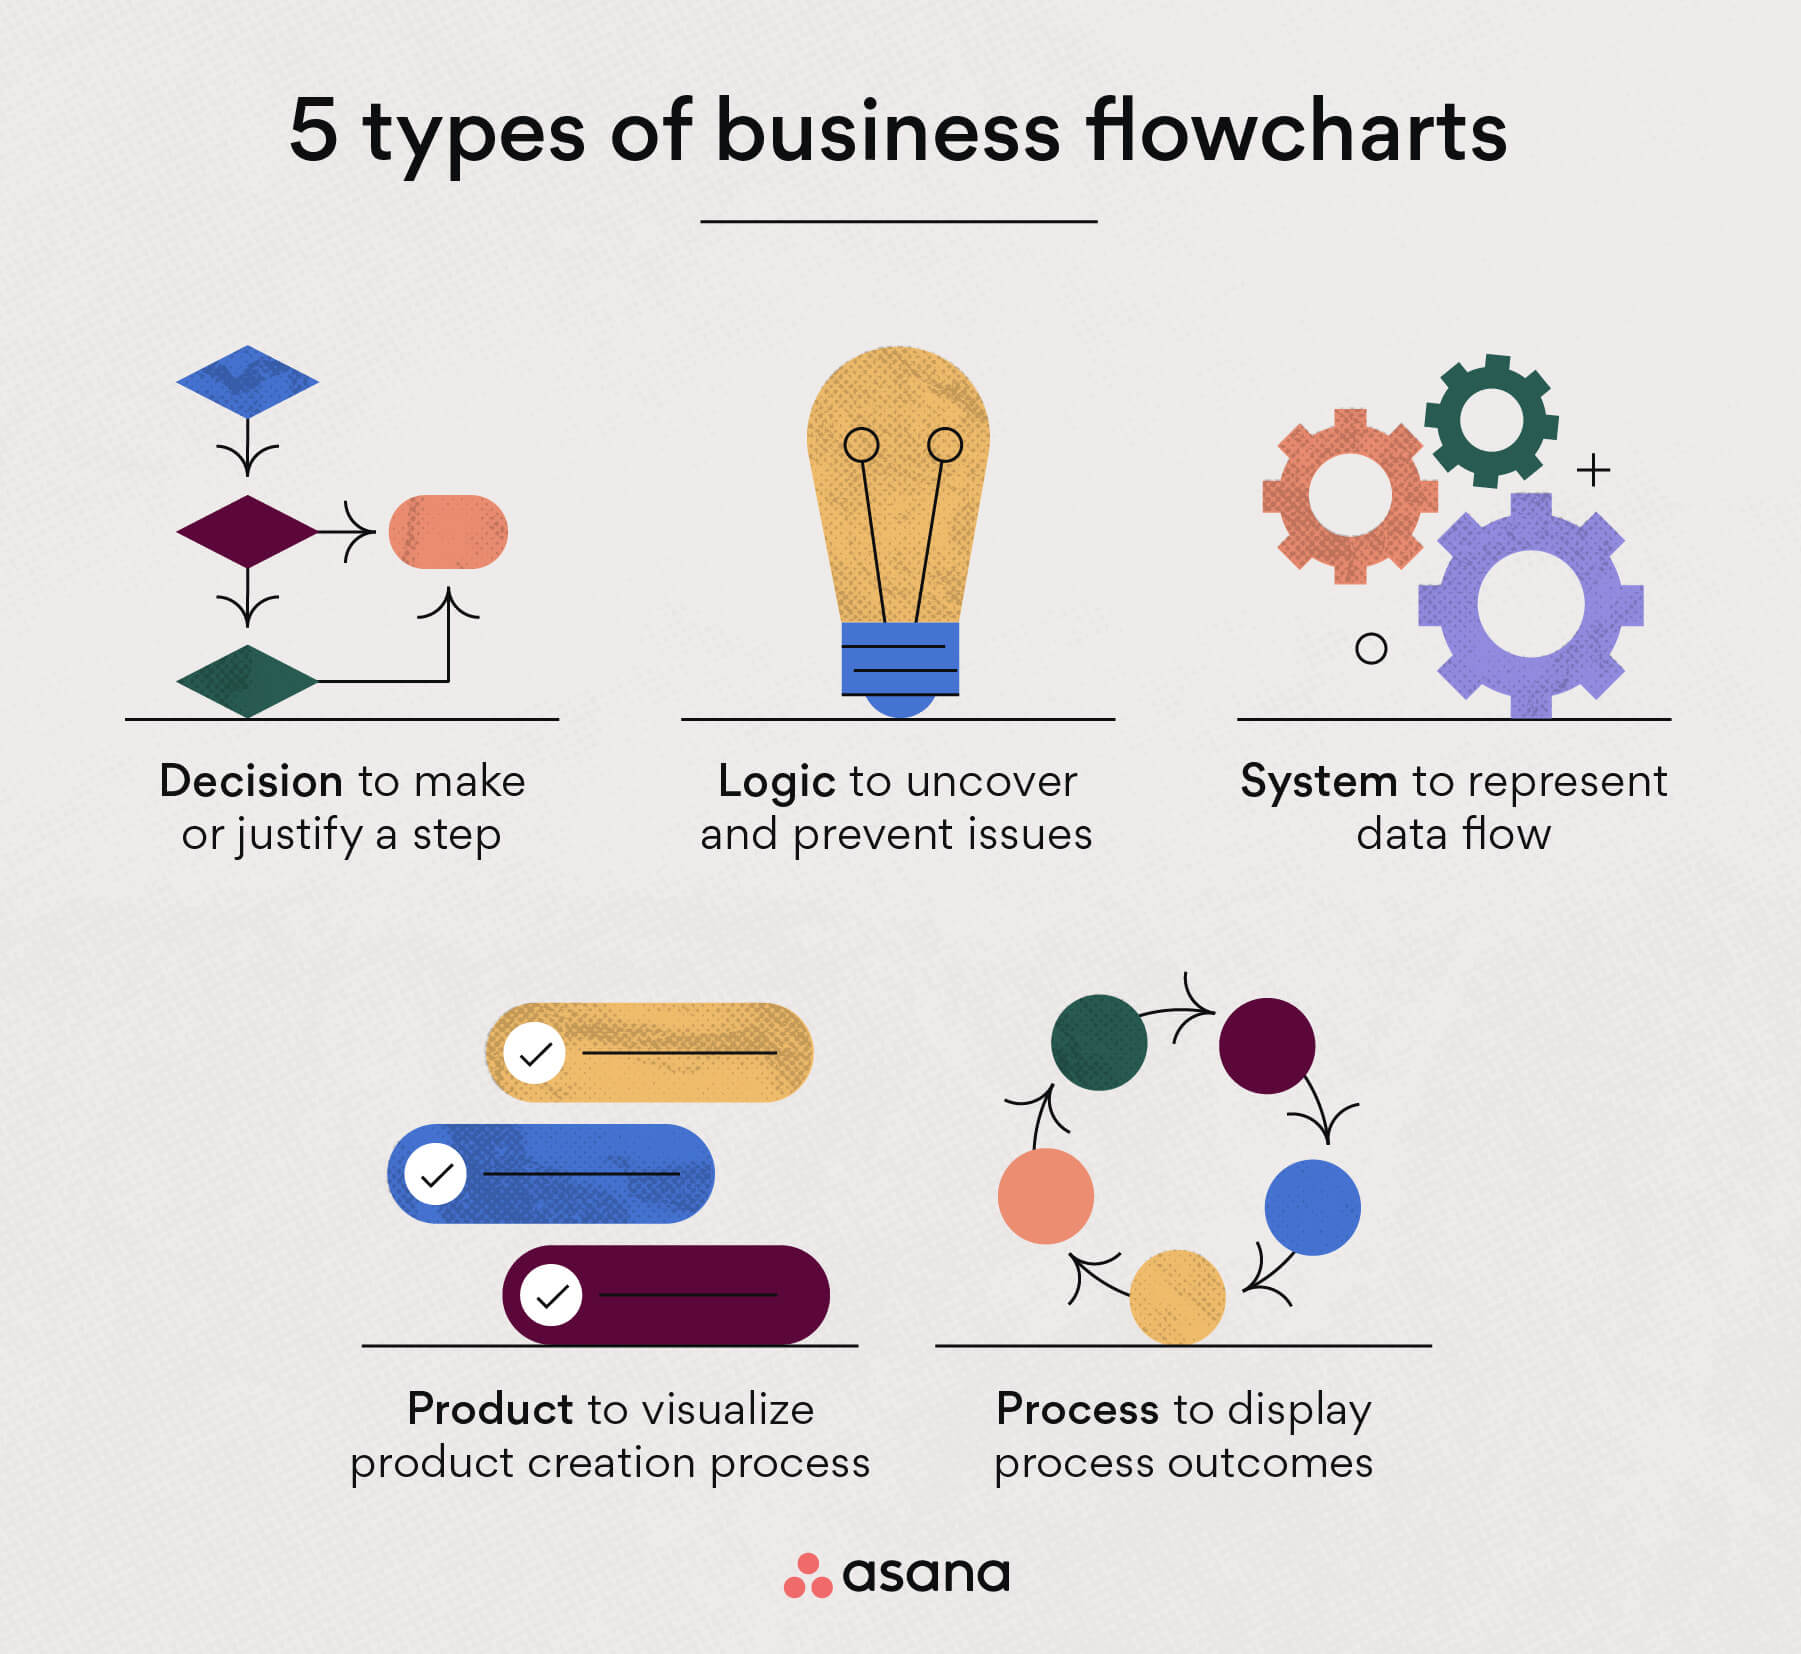 Types of business flowcharts